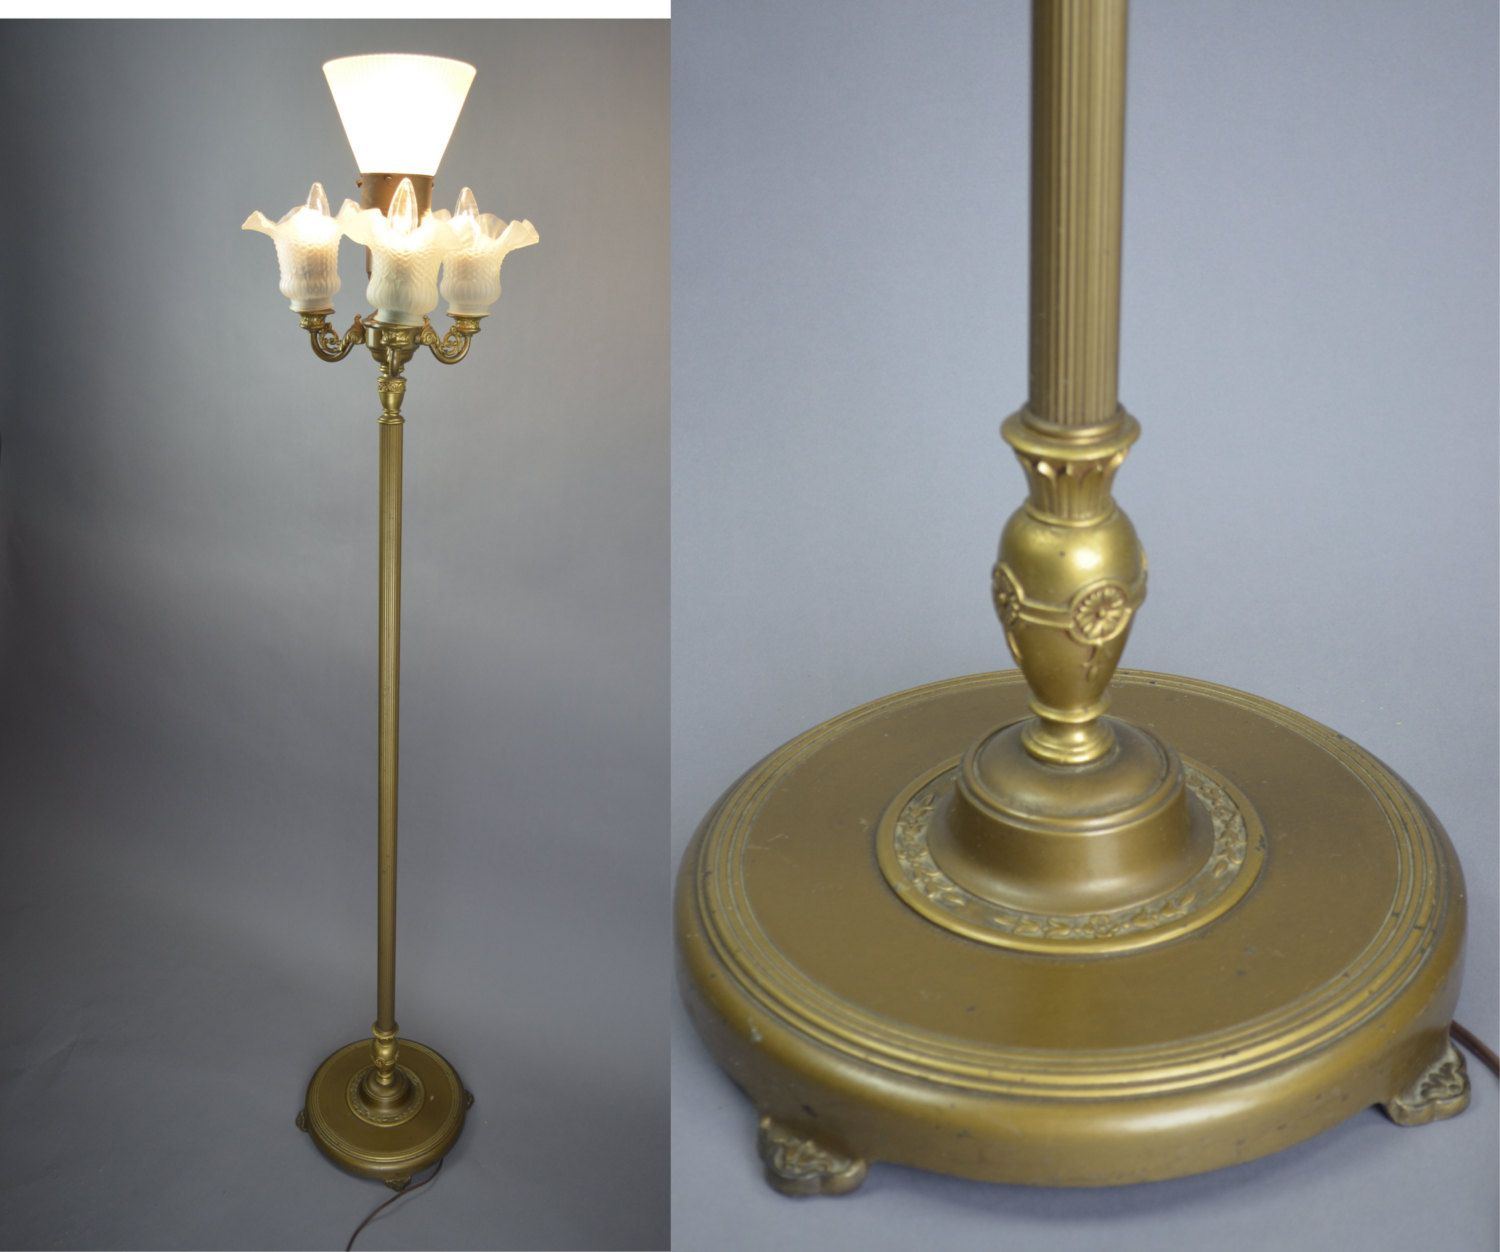 Mogul Floor Lamp With 3 Light Cluster \u0026 Corning Torchiere Diffuser ...